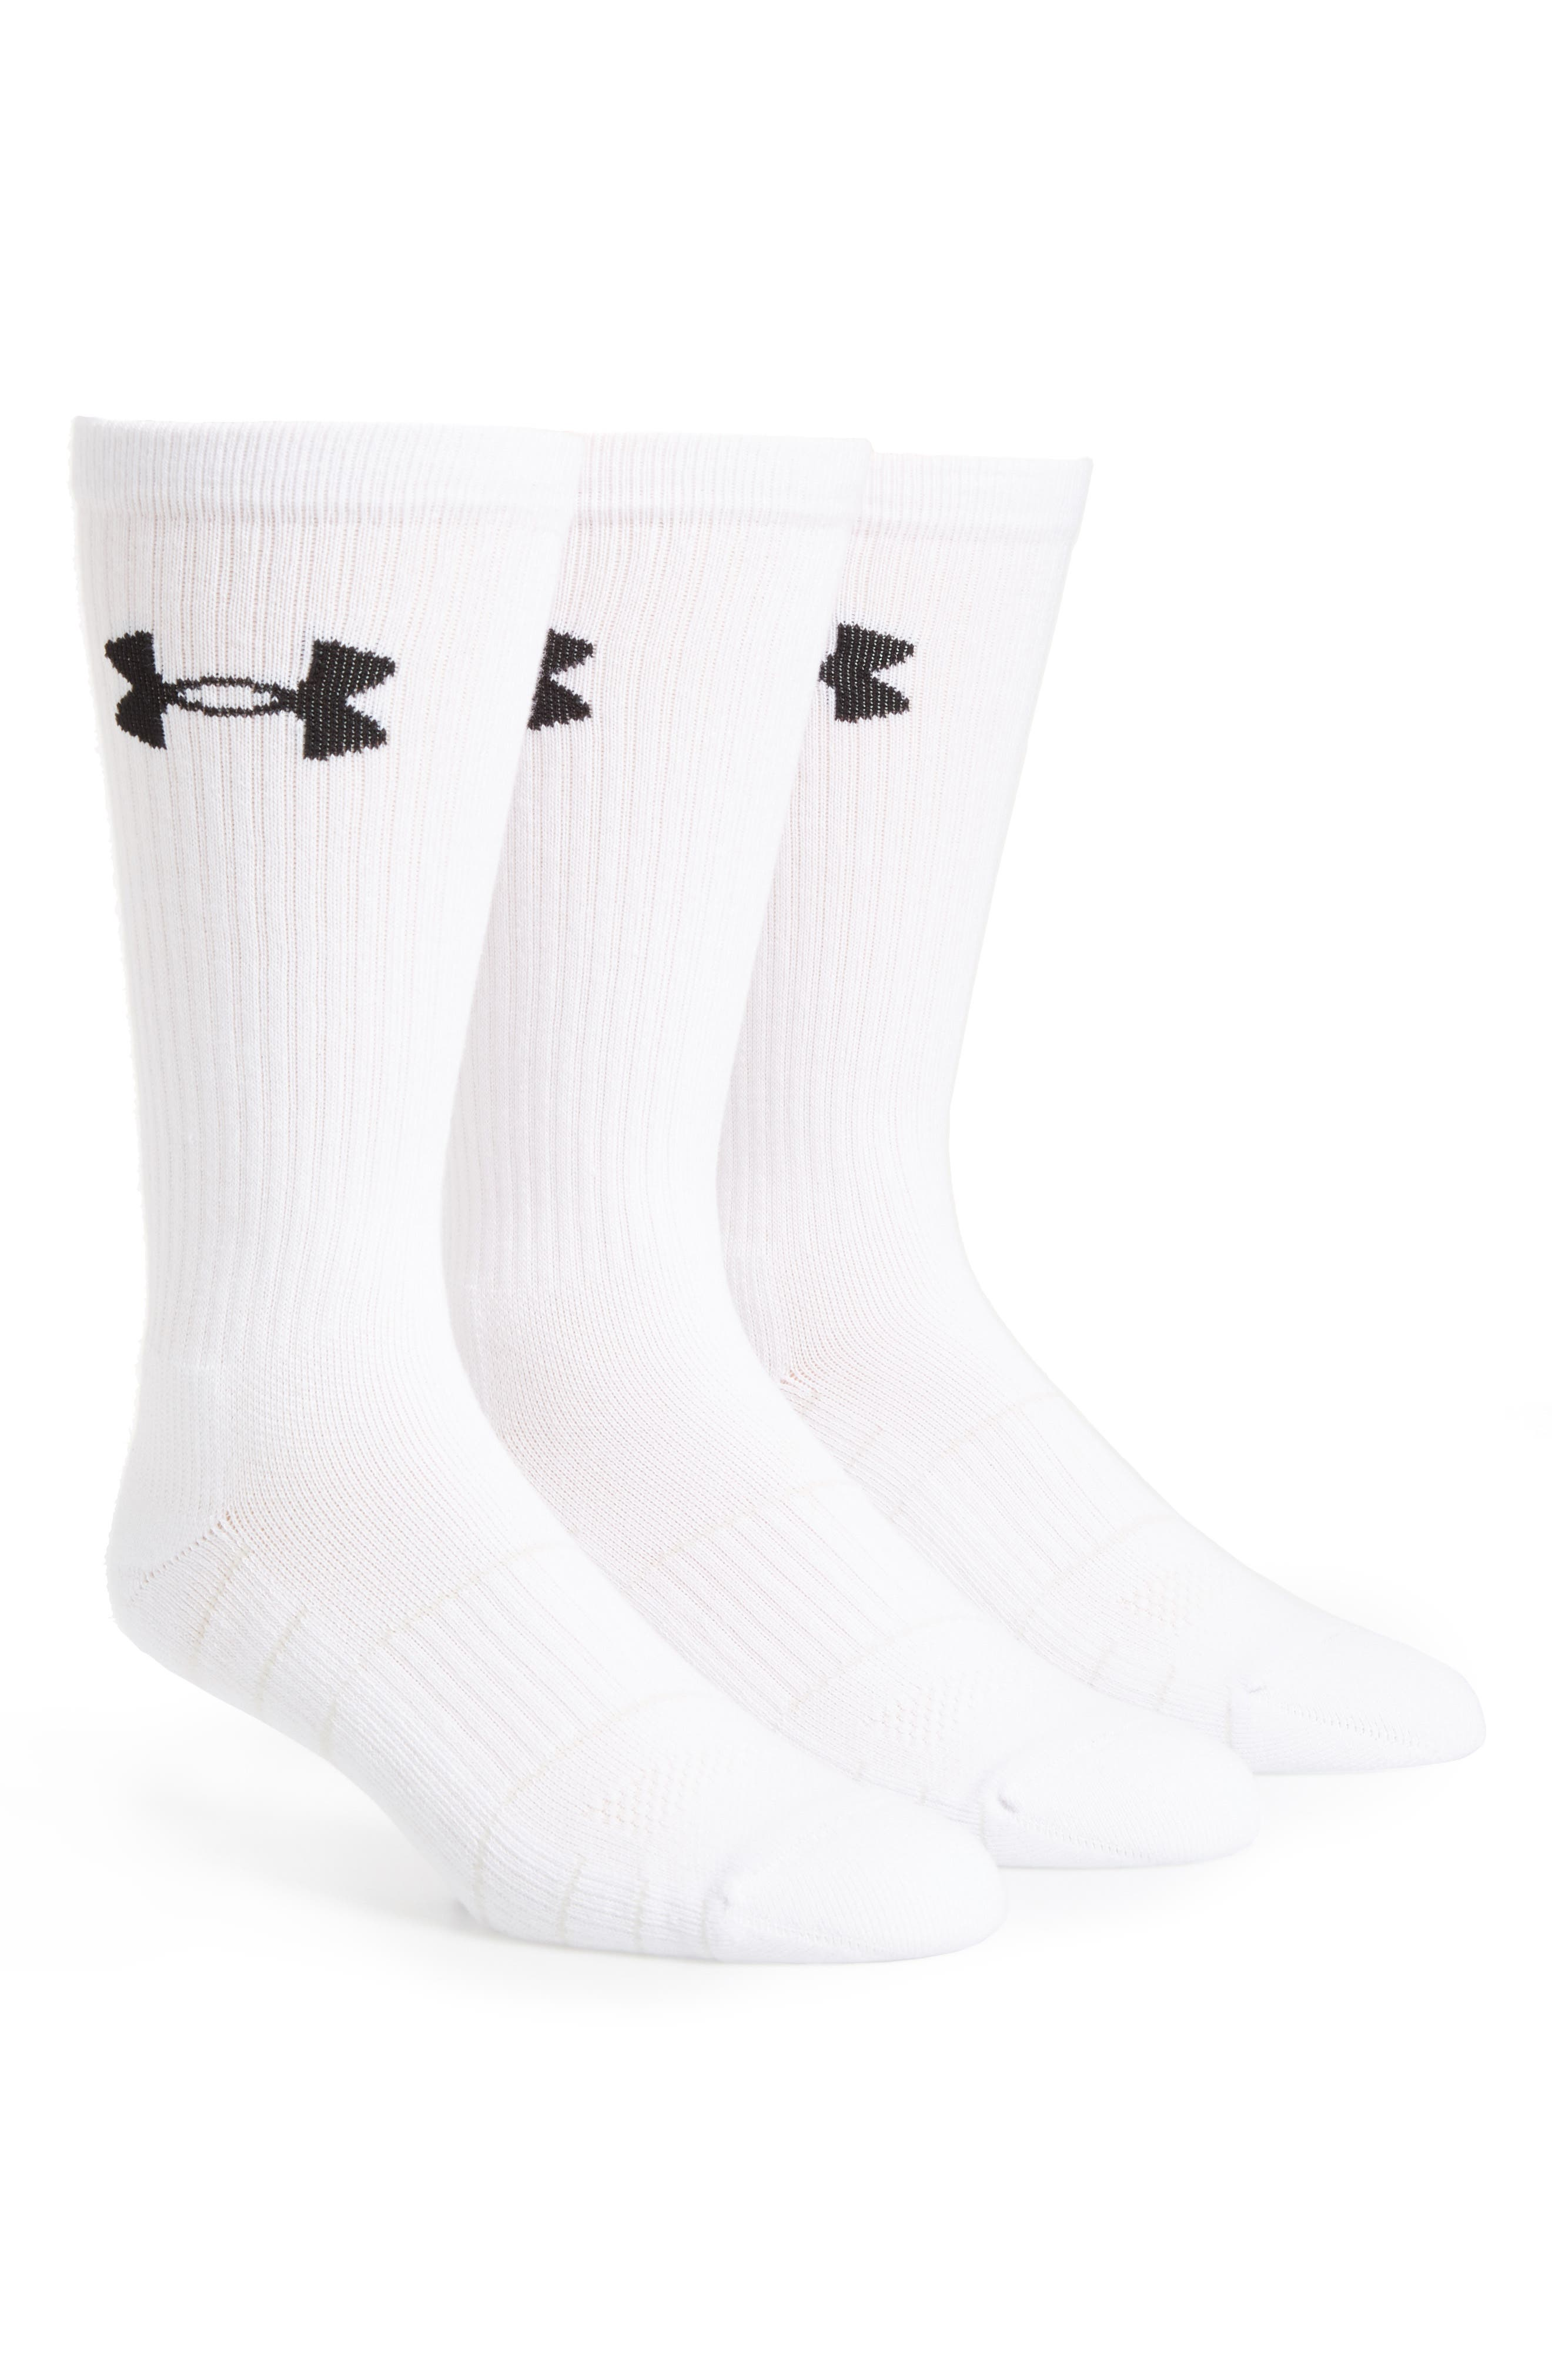 Alternate Image 1 Selected - Under Armour Elevated Performance 3-Pack Socks